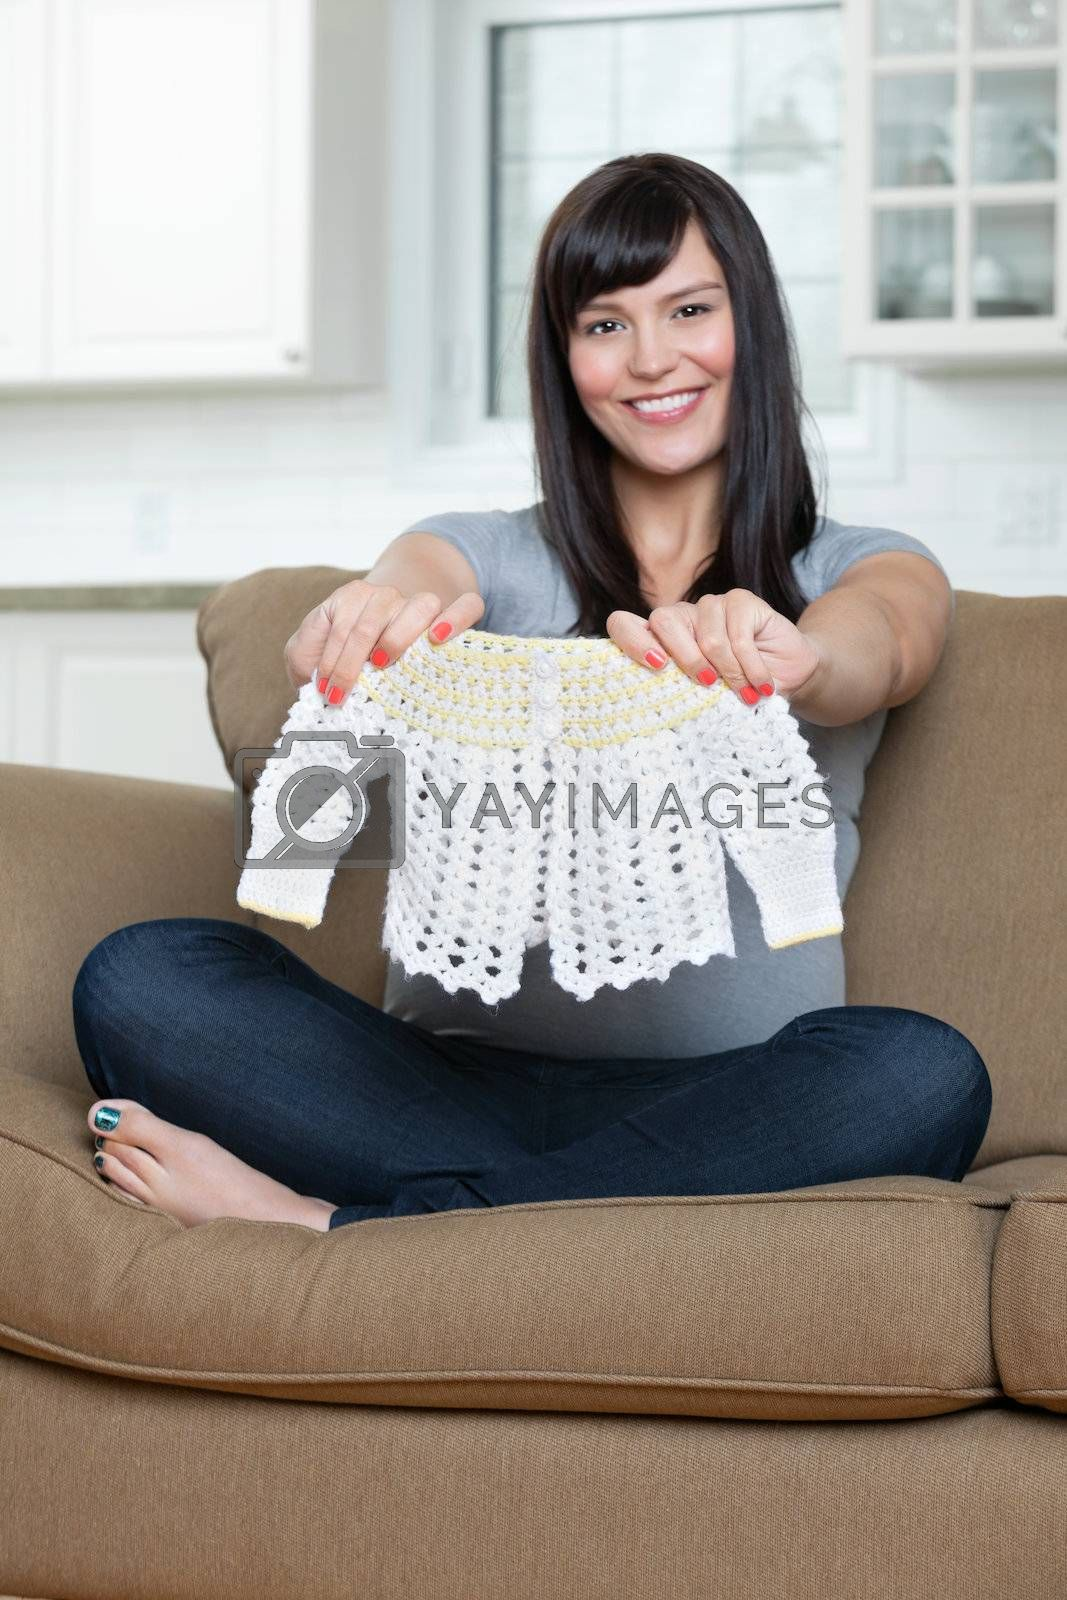 Portrait of happy pregnant woman holding baby clothing while sitting on sofa